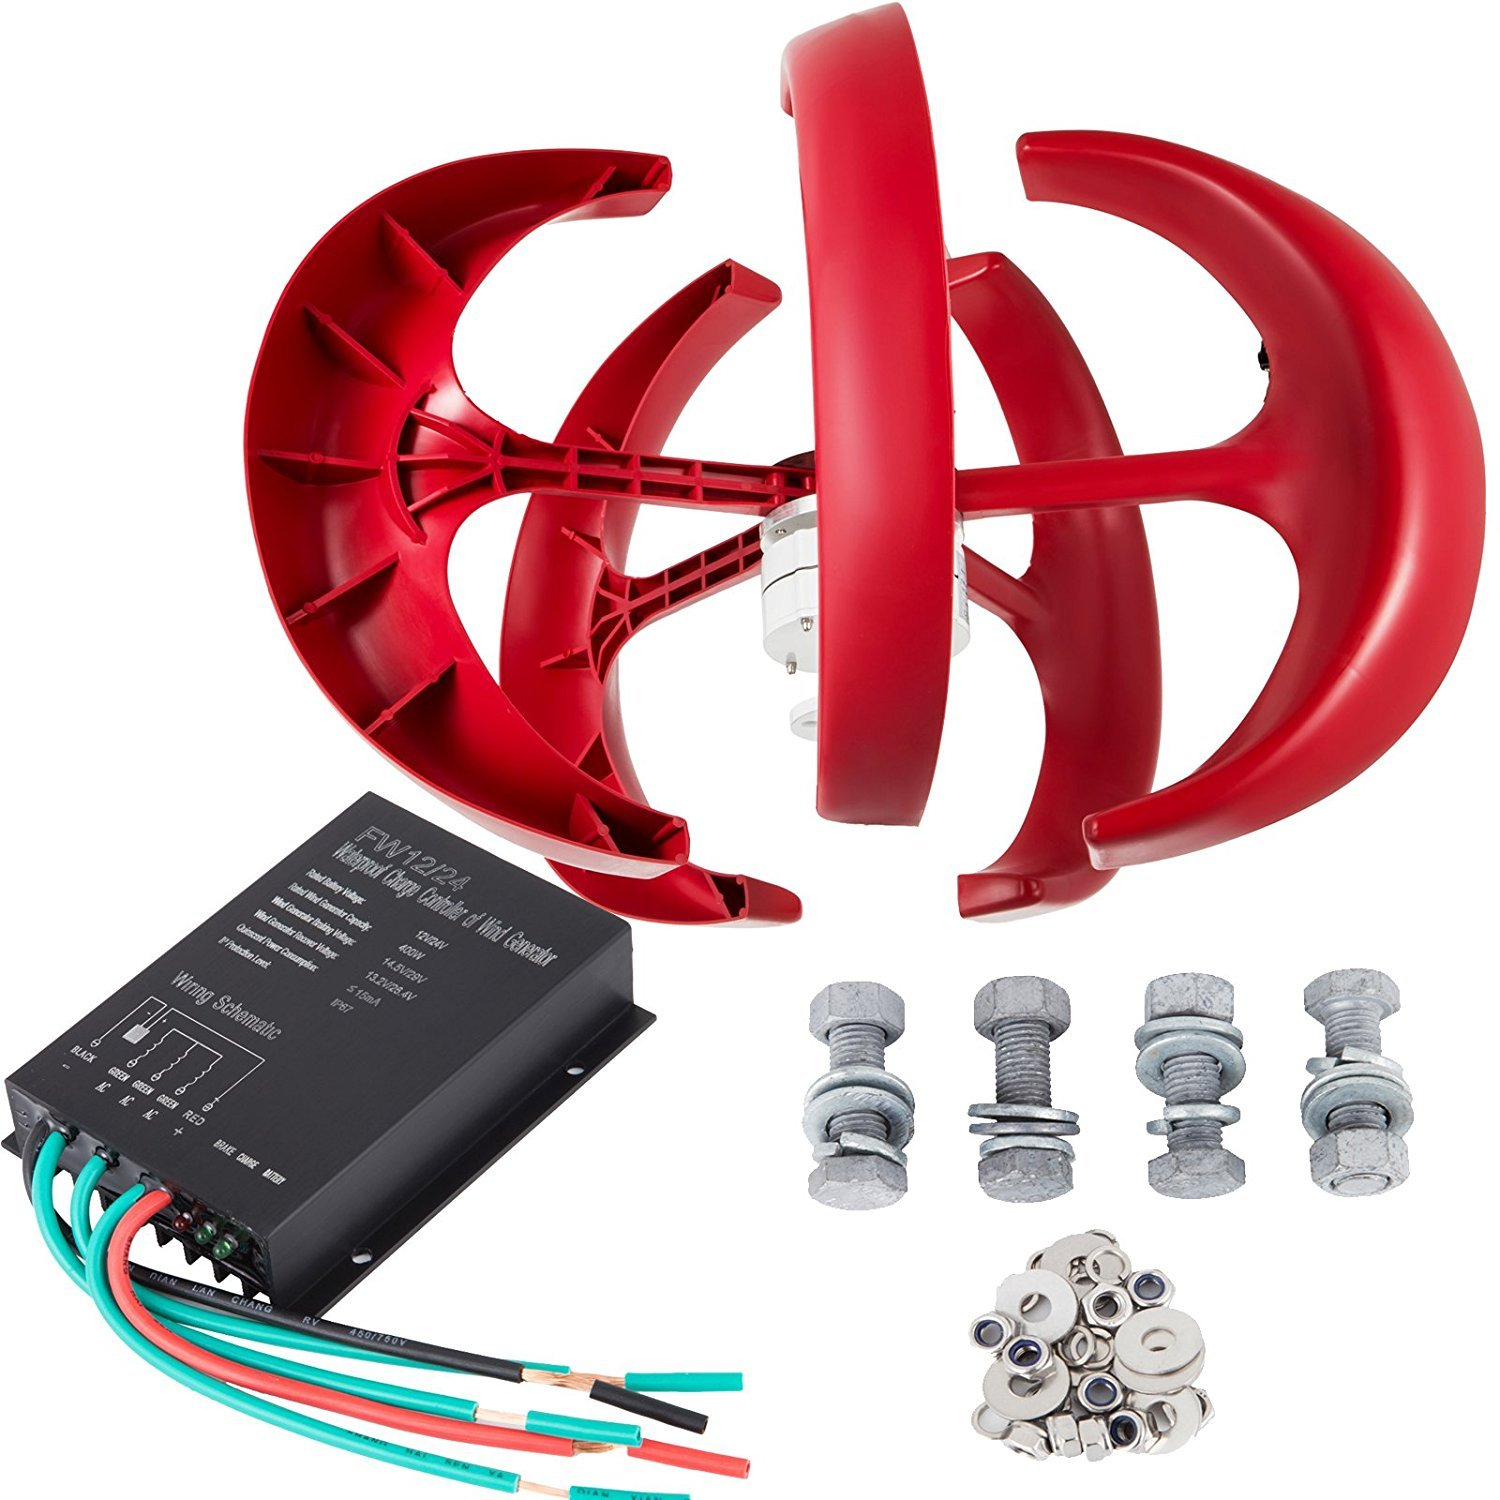 FORAVER 100W DC 24V Wind Turbine Generator Kit 5 Blades Vertical Wind Power Turbine Generator Red Lantern with Charge Controller for Power Supplementation (100W 24V)